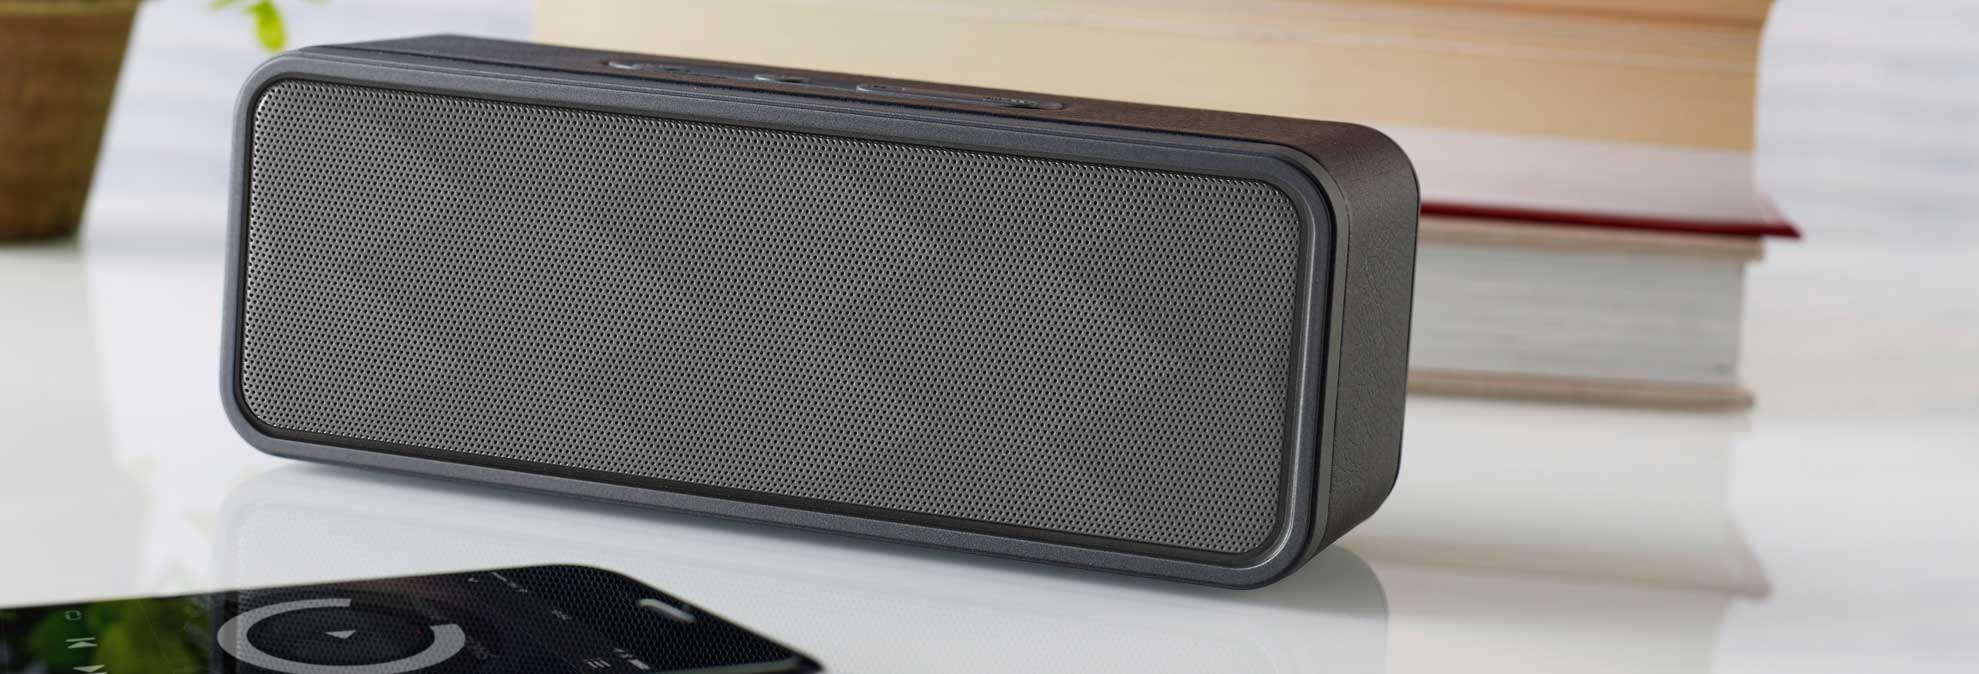 Best Wireless Speakers To Buy Right Now Consumer Reports